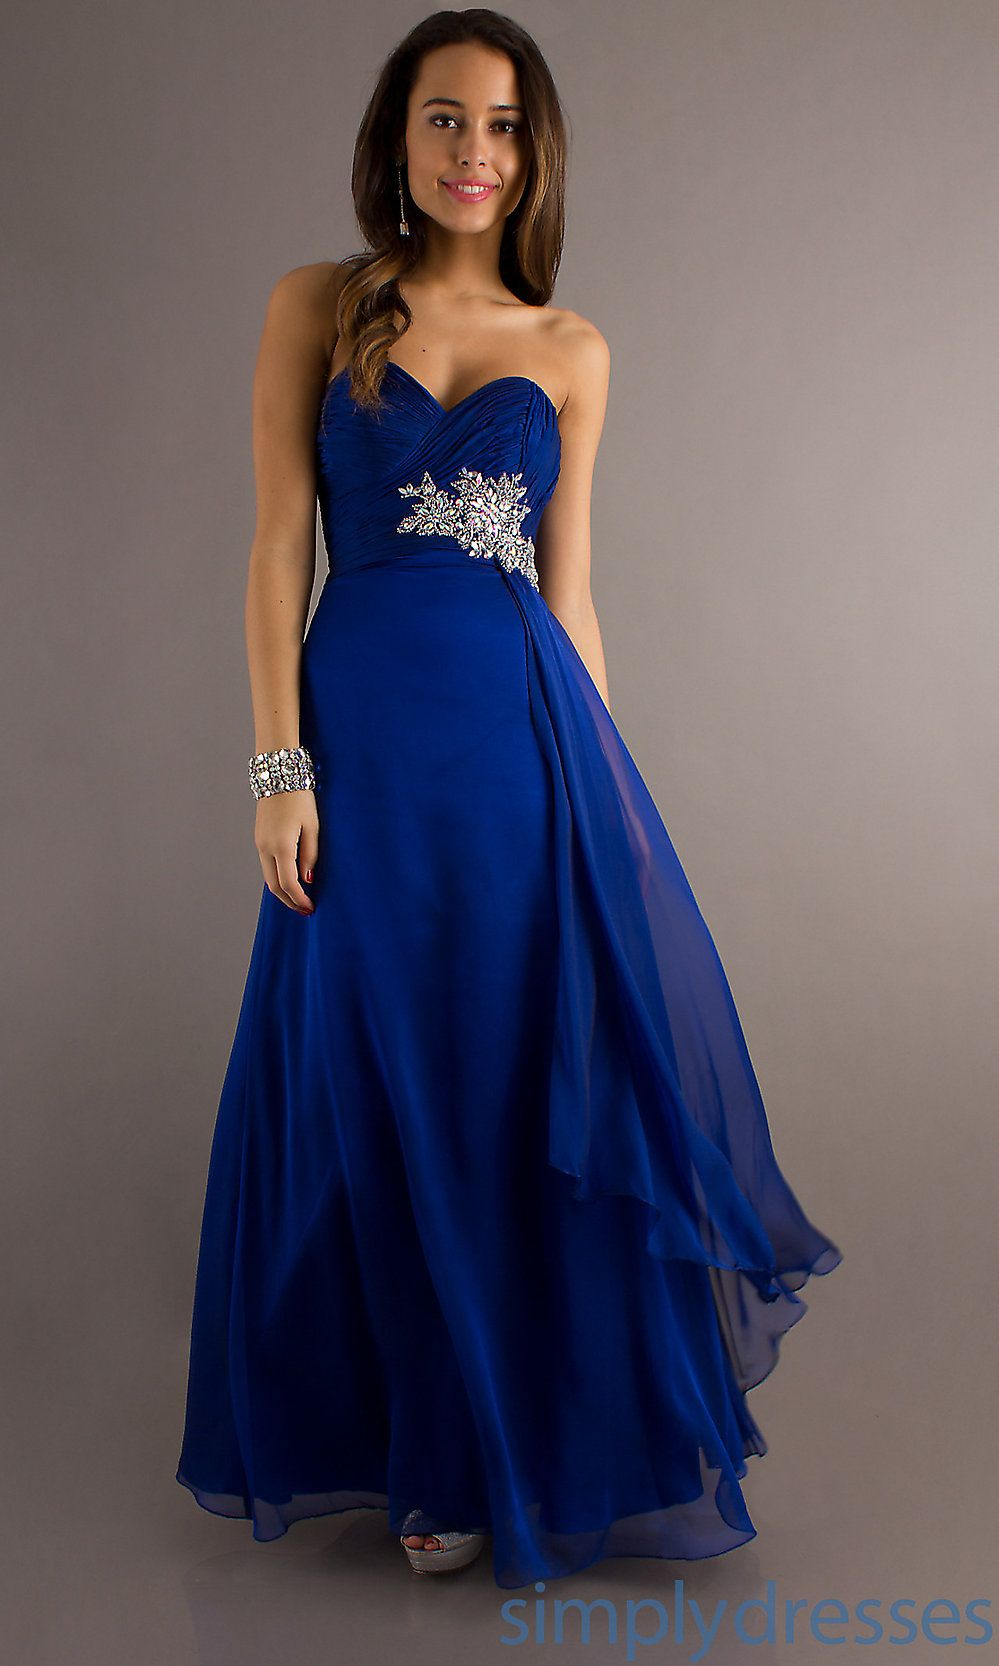 Dresses Formal Prom Evening Wear Temptation Floor Length Strapless Royal Blue